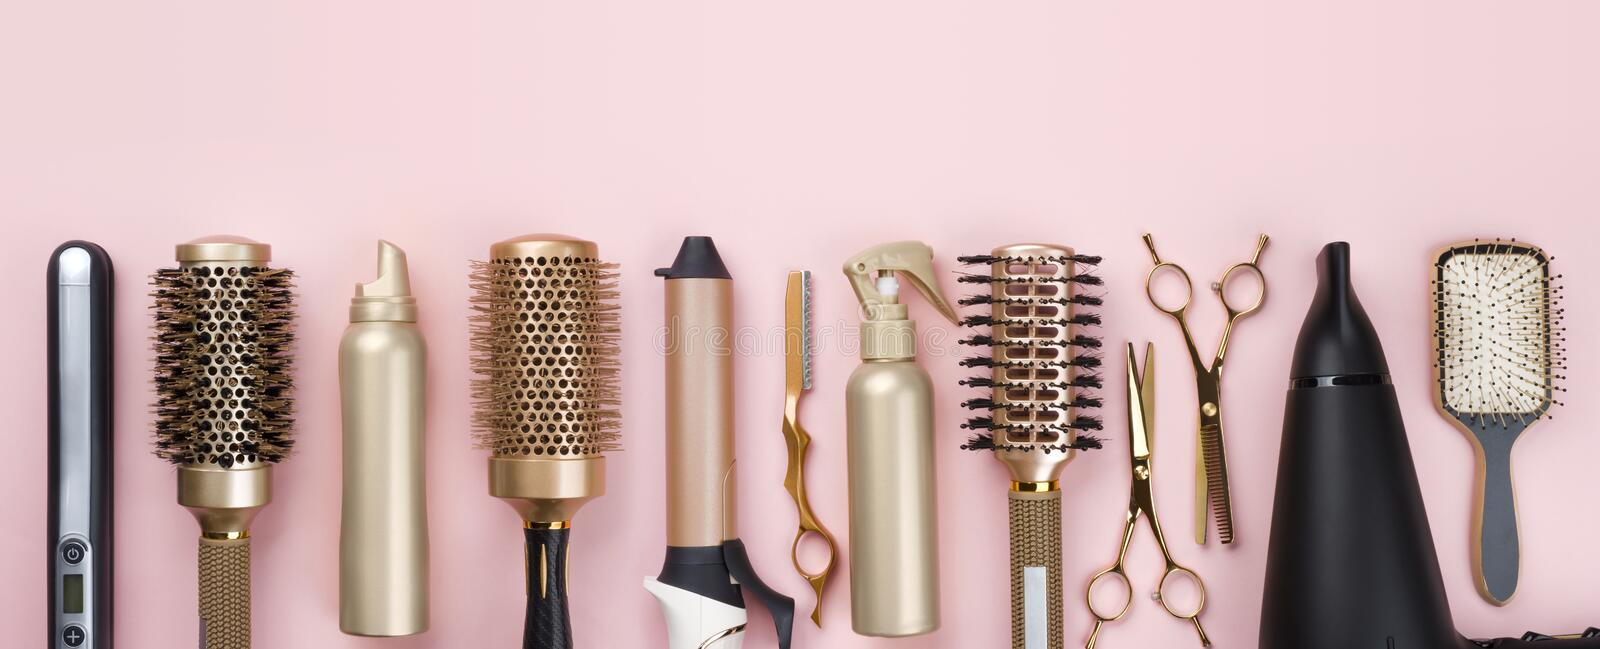 Professional hair dresser tools on pink background with copy space royalty free stock images